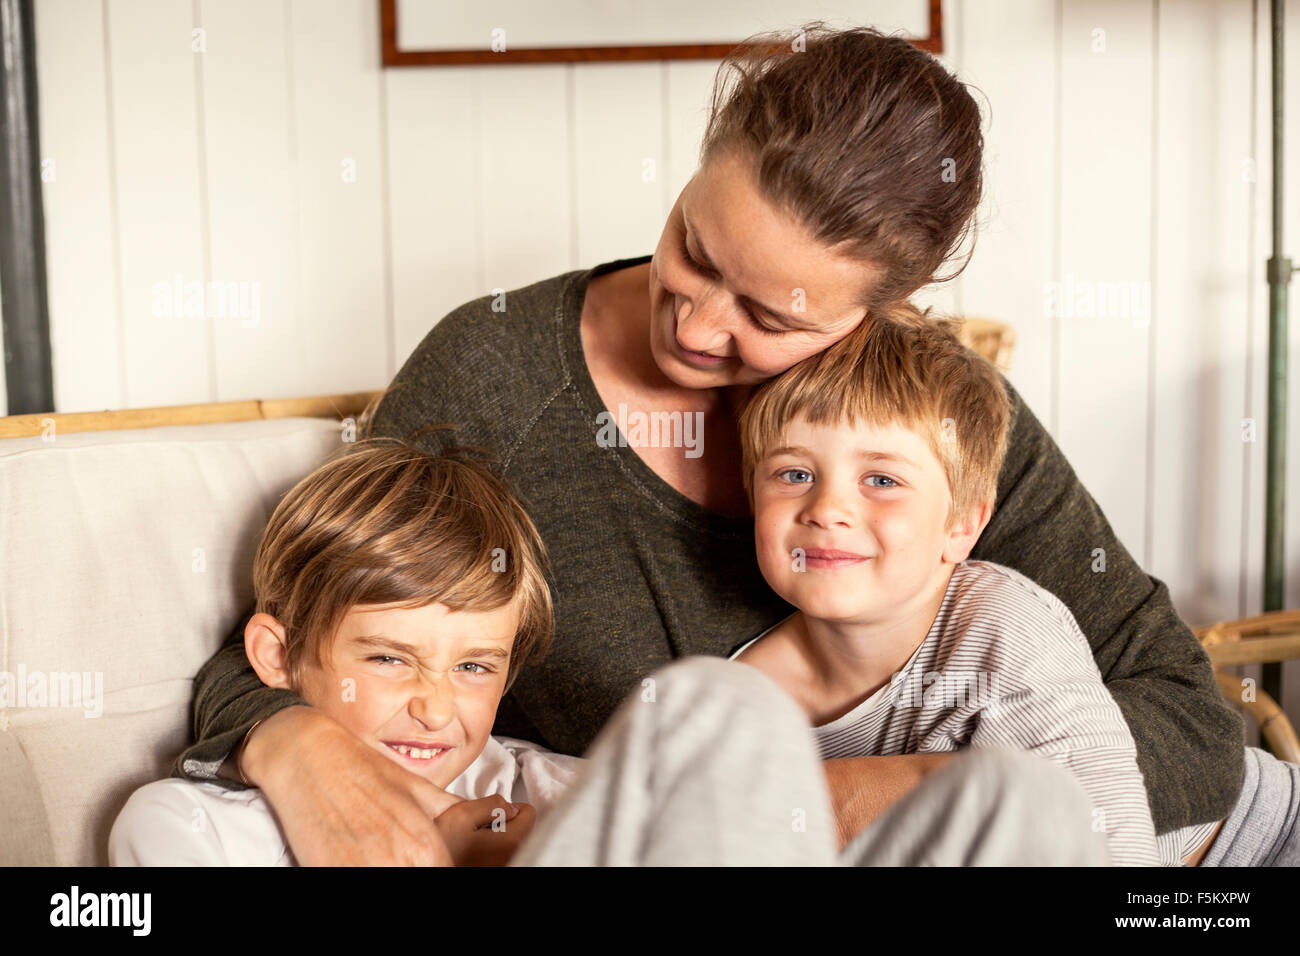 Sweden, Uppland, Runmaro, Barrskar, Portrait of mother with two sons (4-5, 6-7) Stock Photo